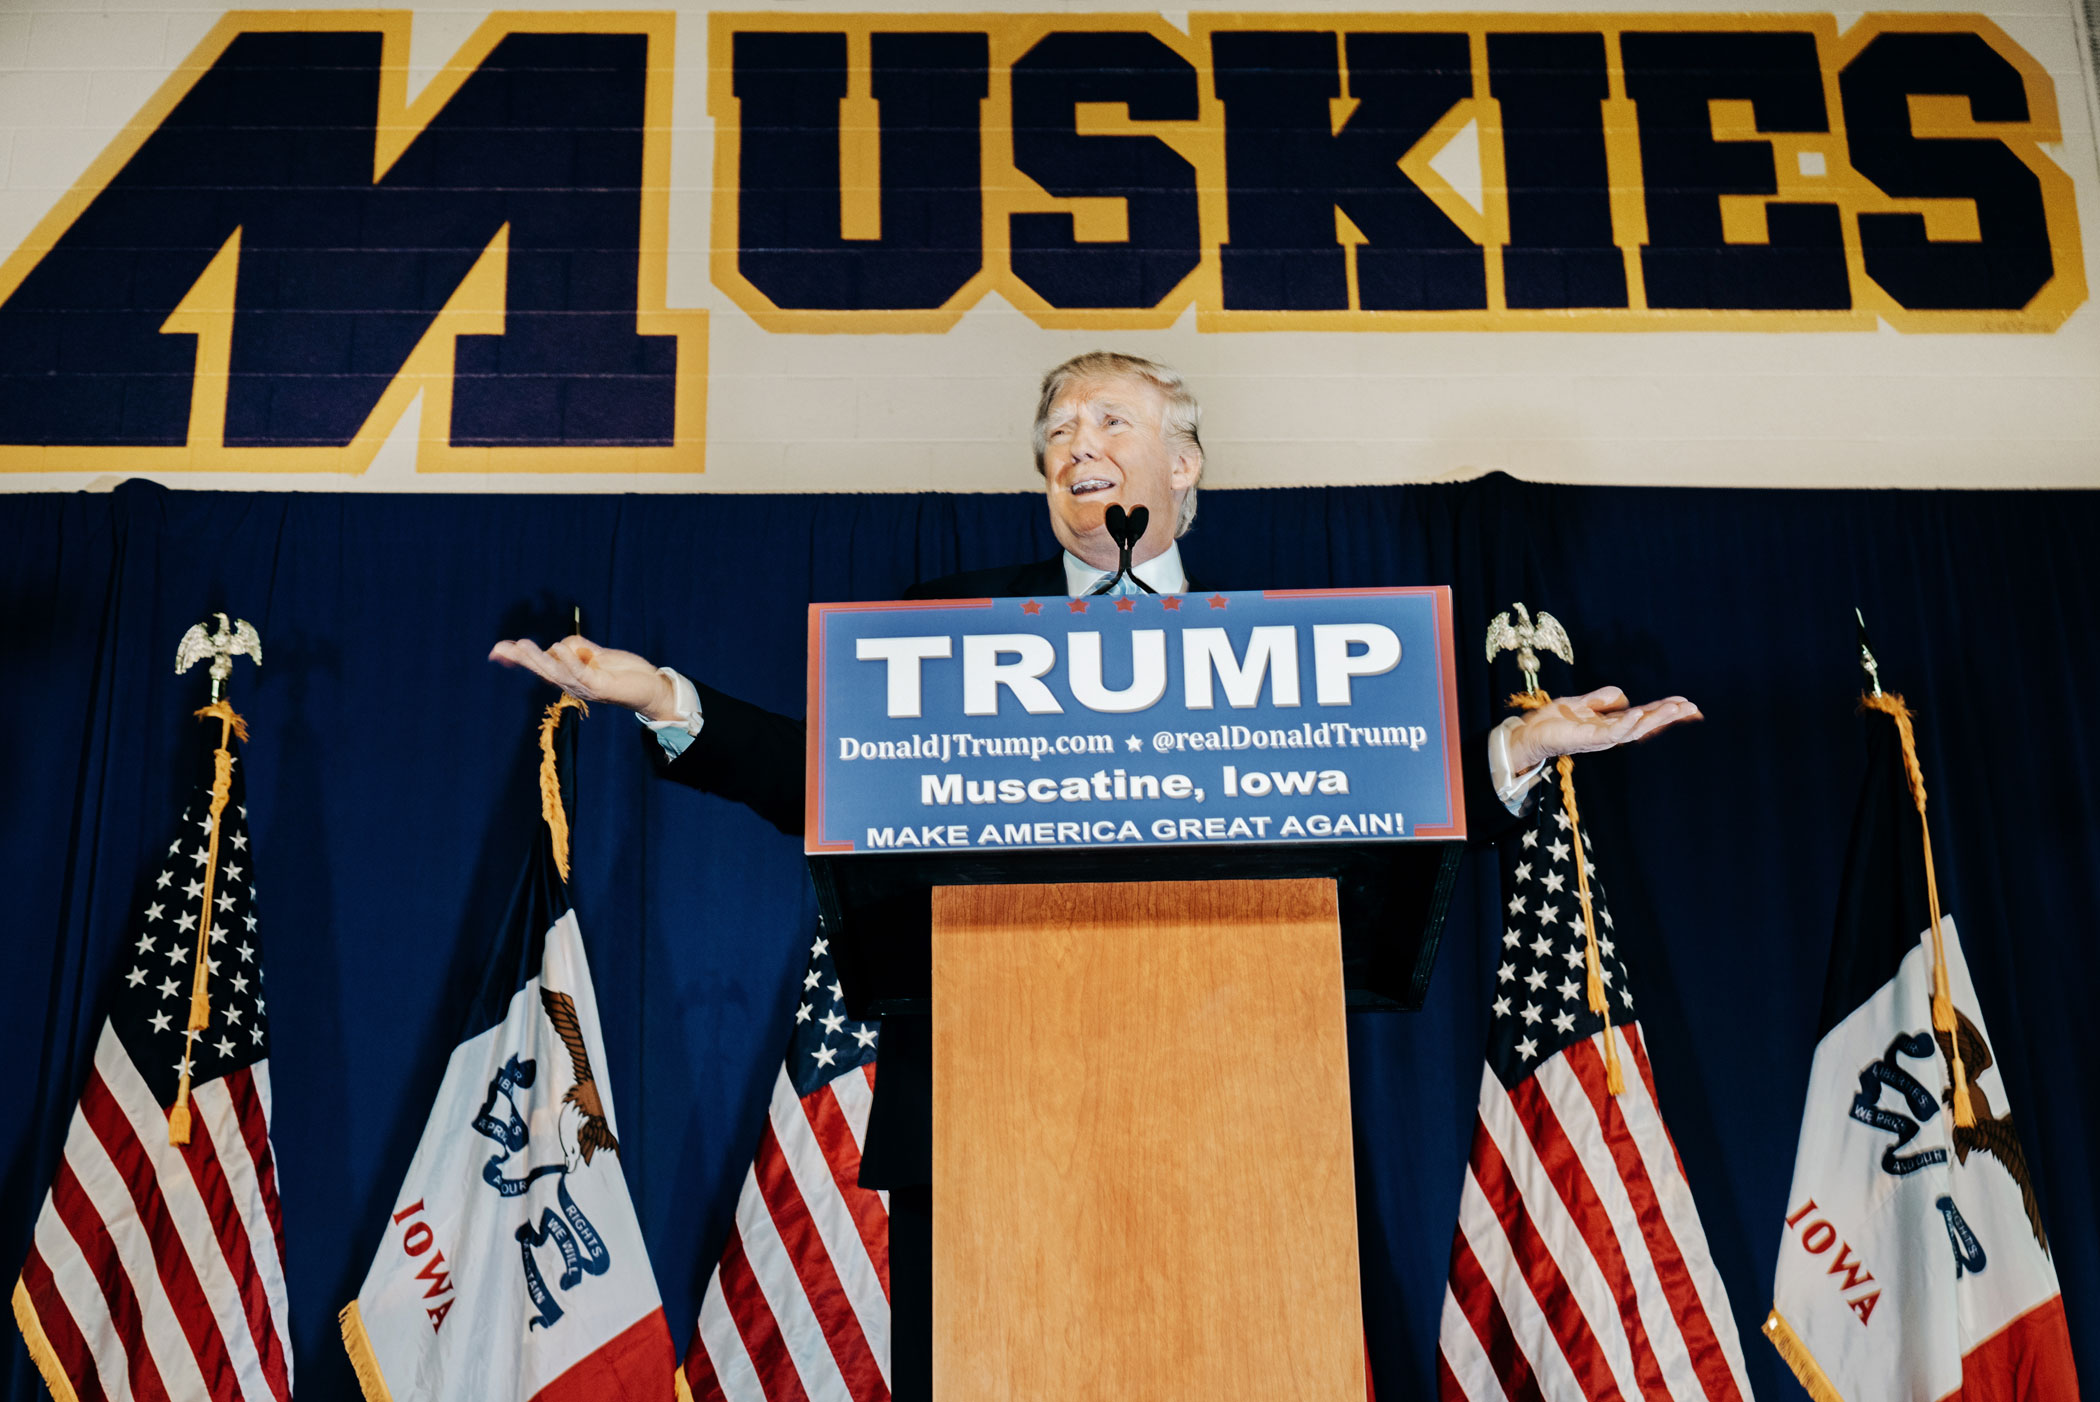 Donald Trump speaks at a campaign event in Muskatine, Iowa on Jan. 24, 2016.